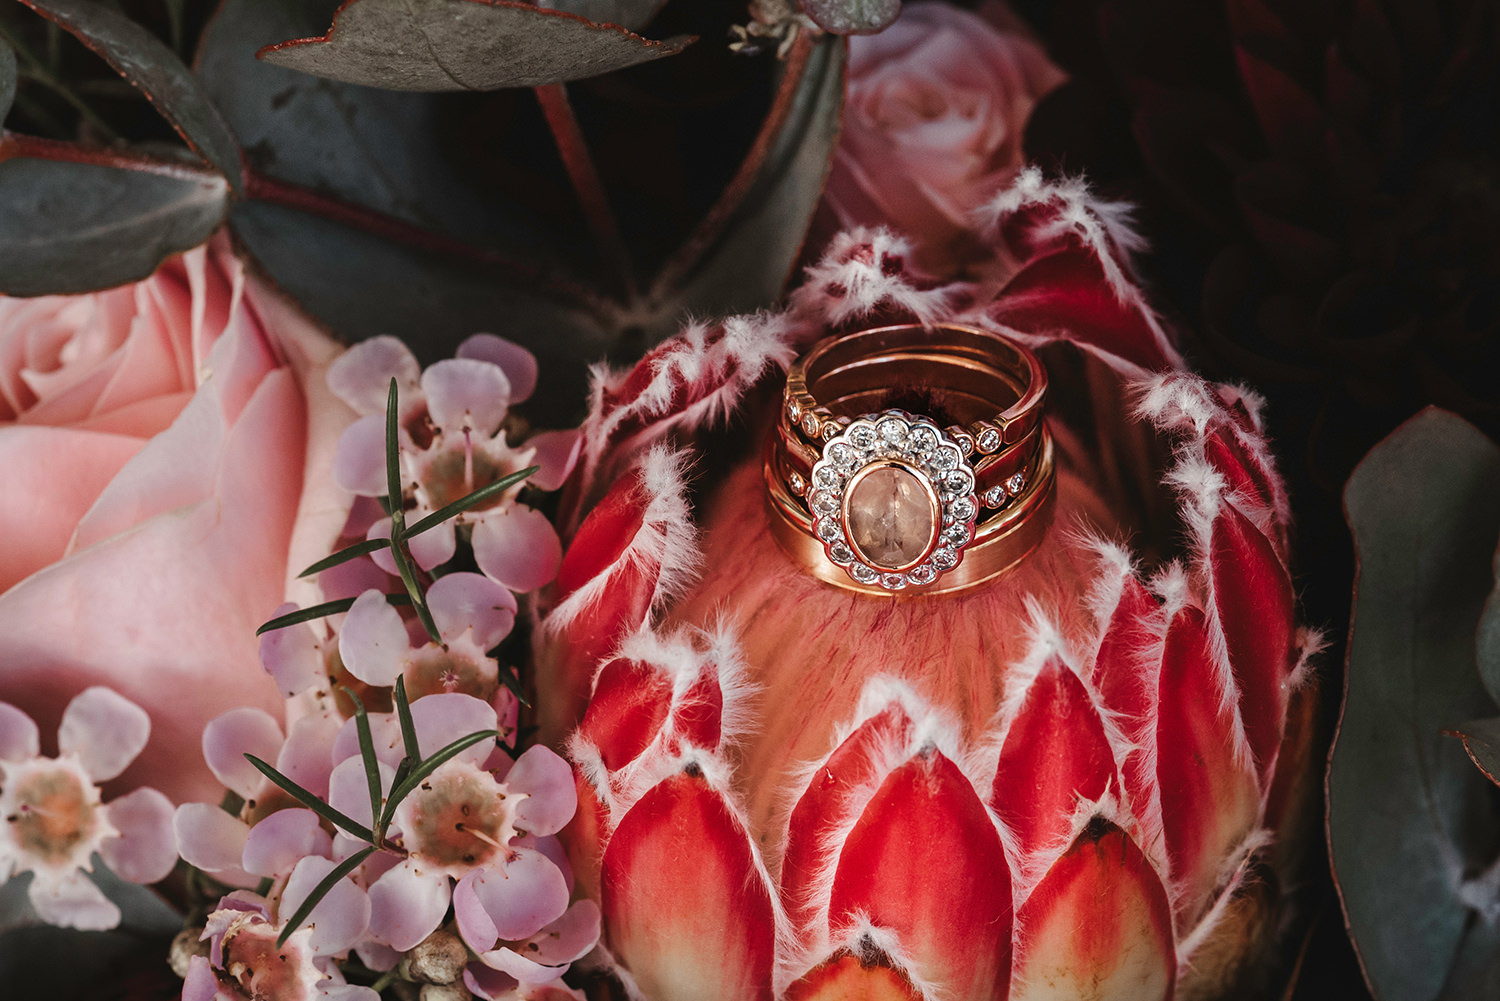 Wedding Rings sitting on a native flower surrounded by pink roses